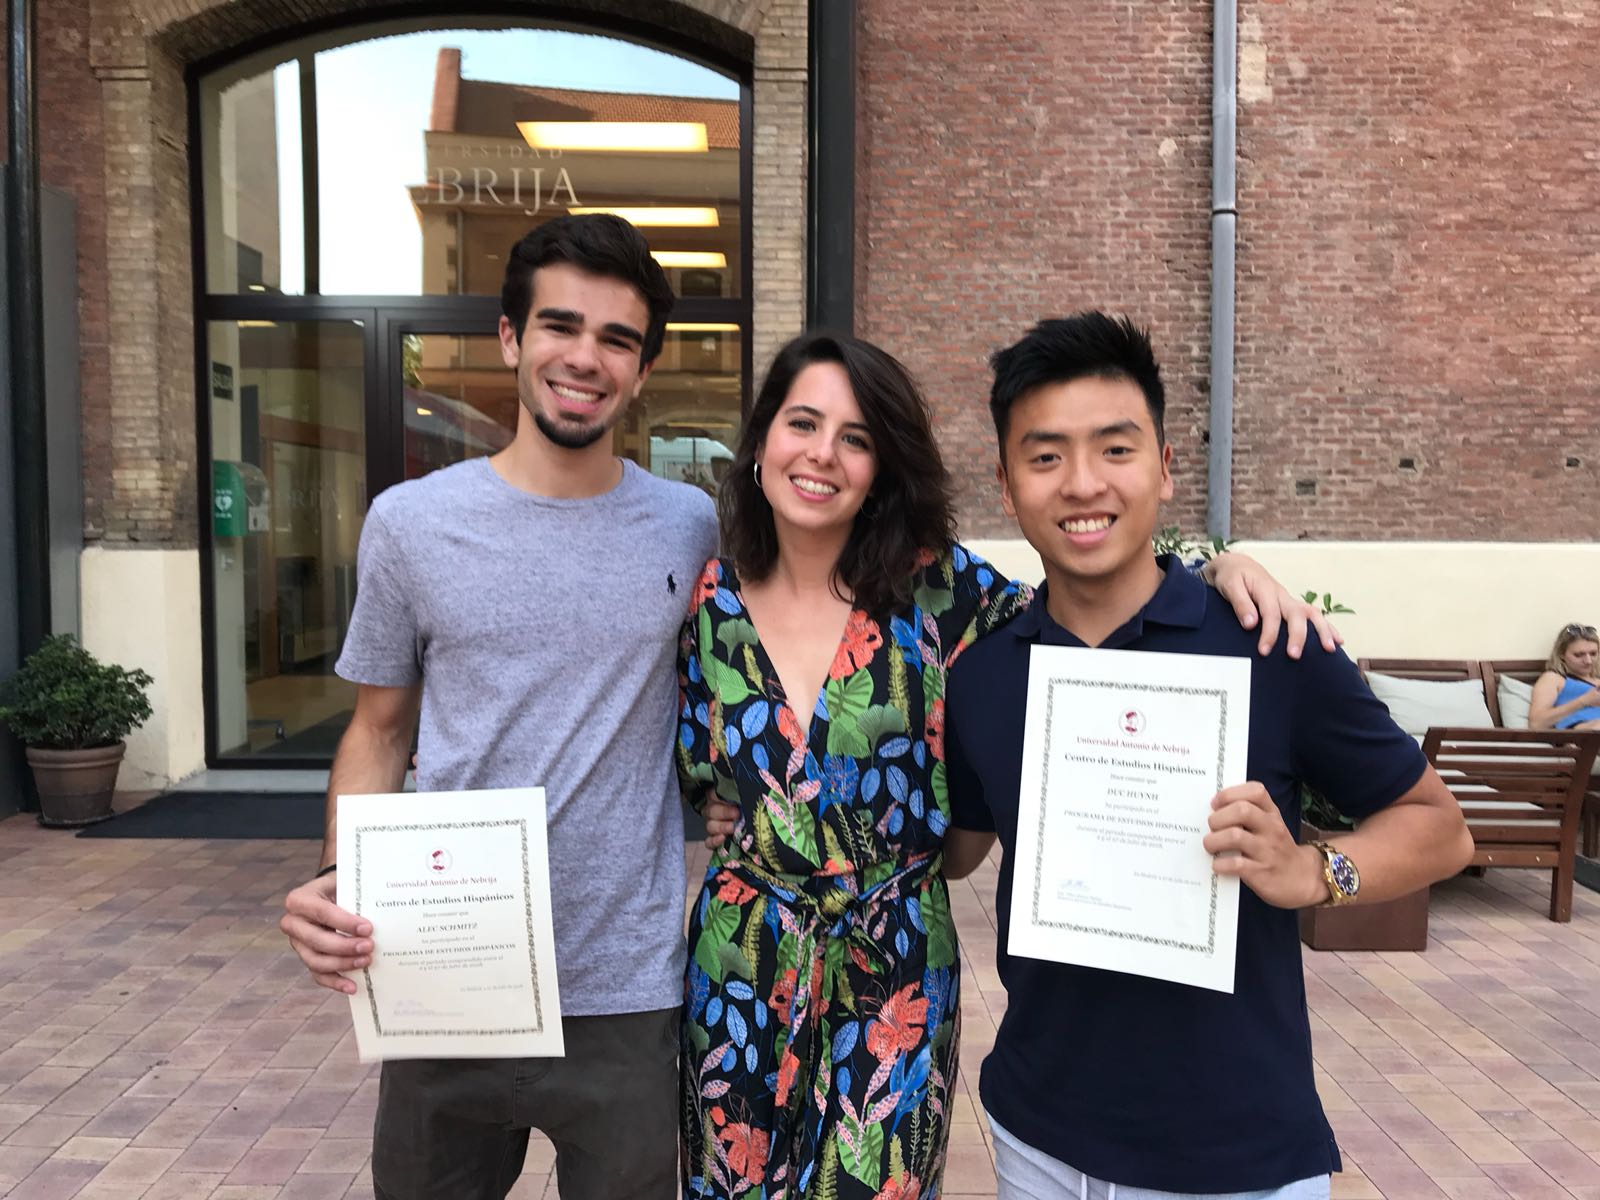 Three people standing outside, two holding up pieces of paper